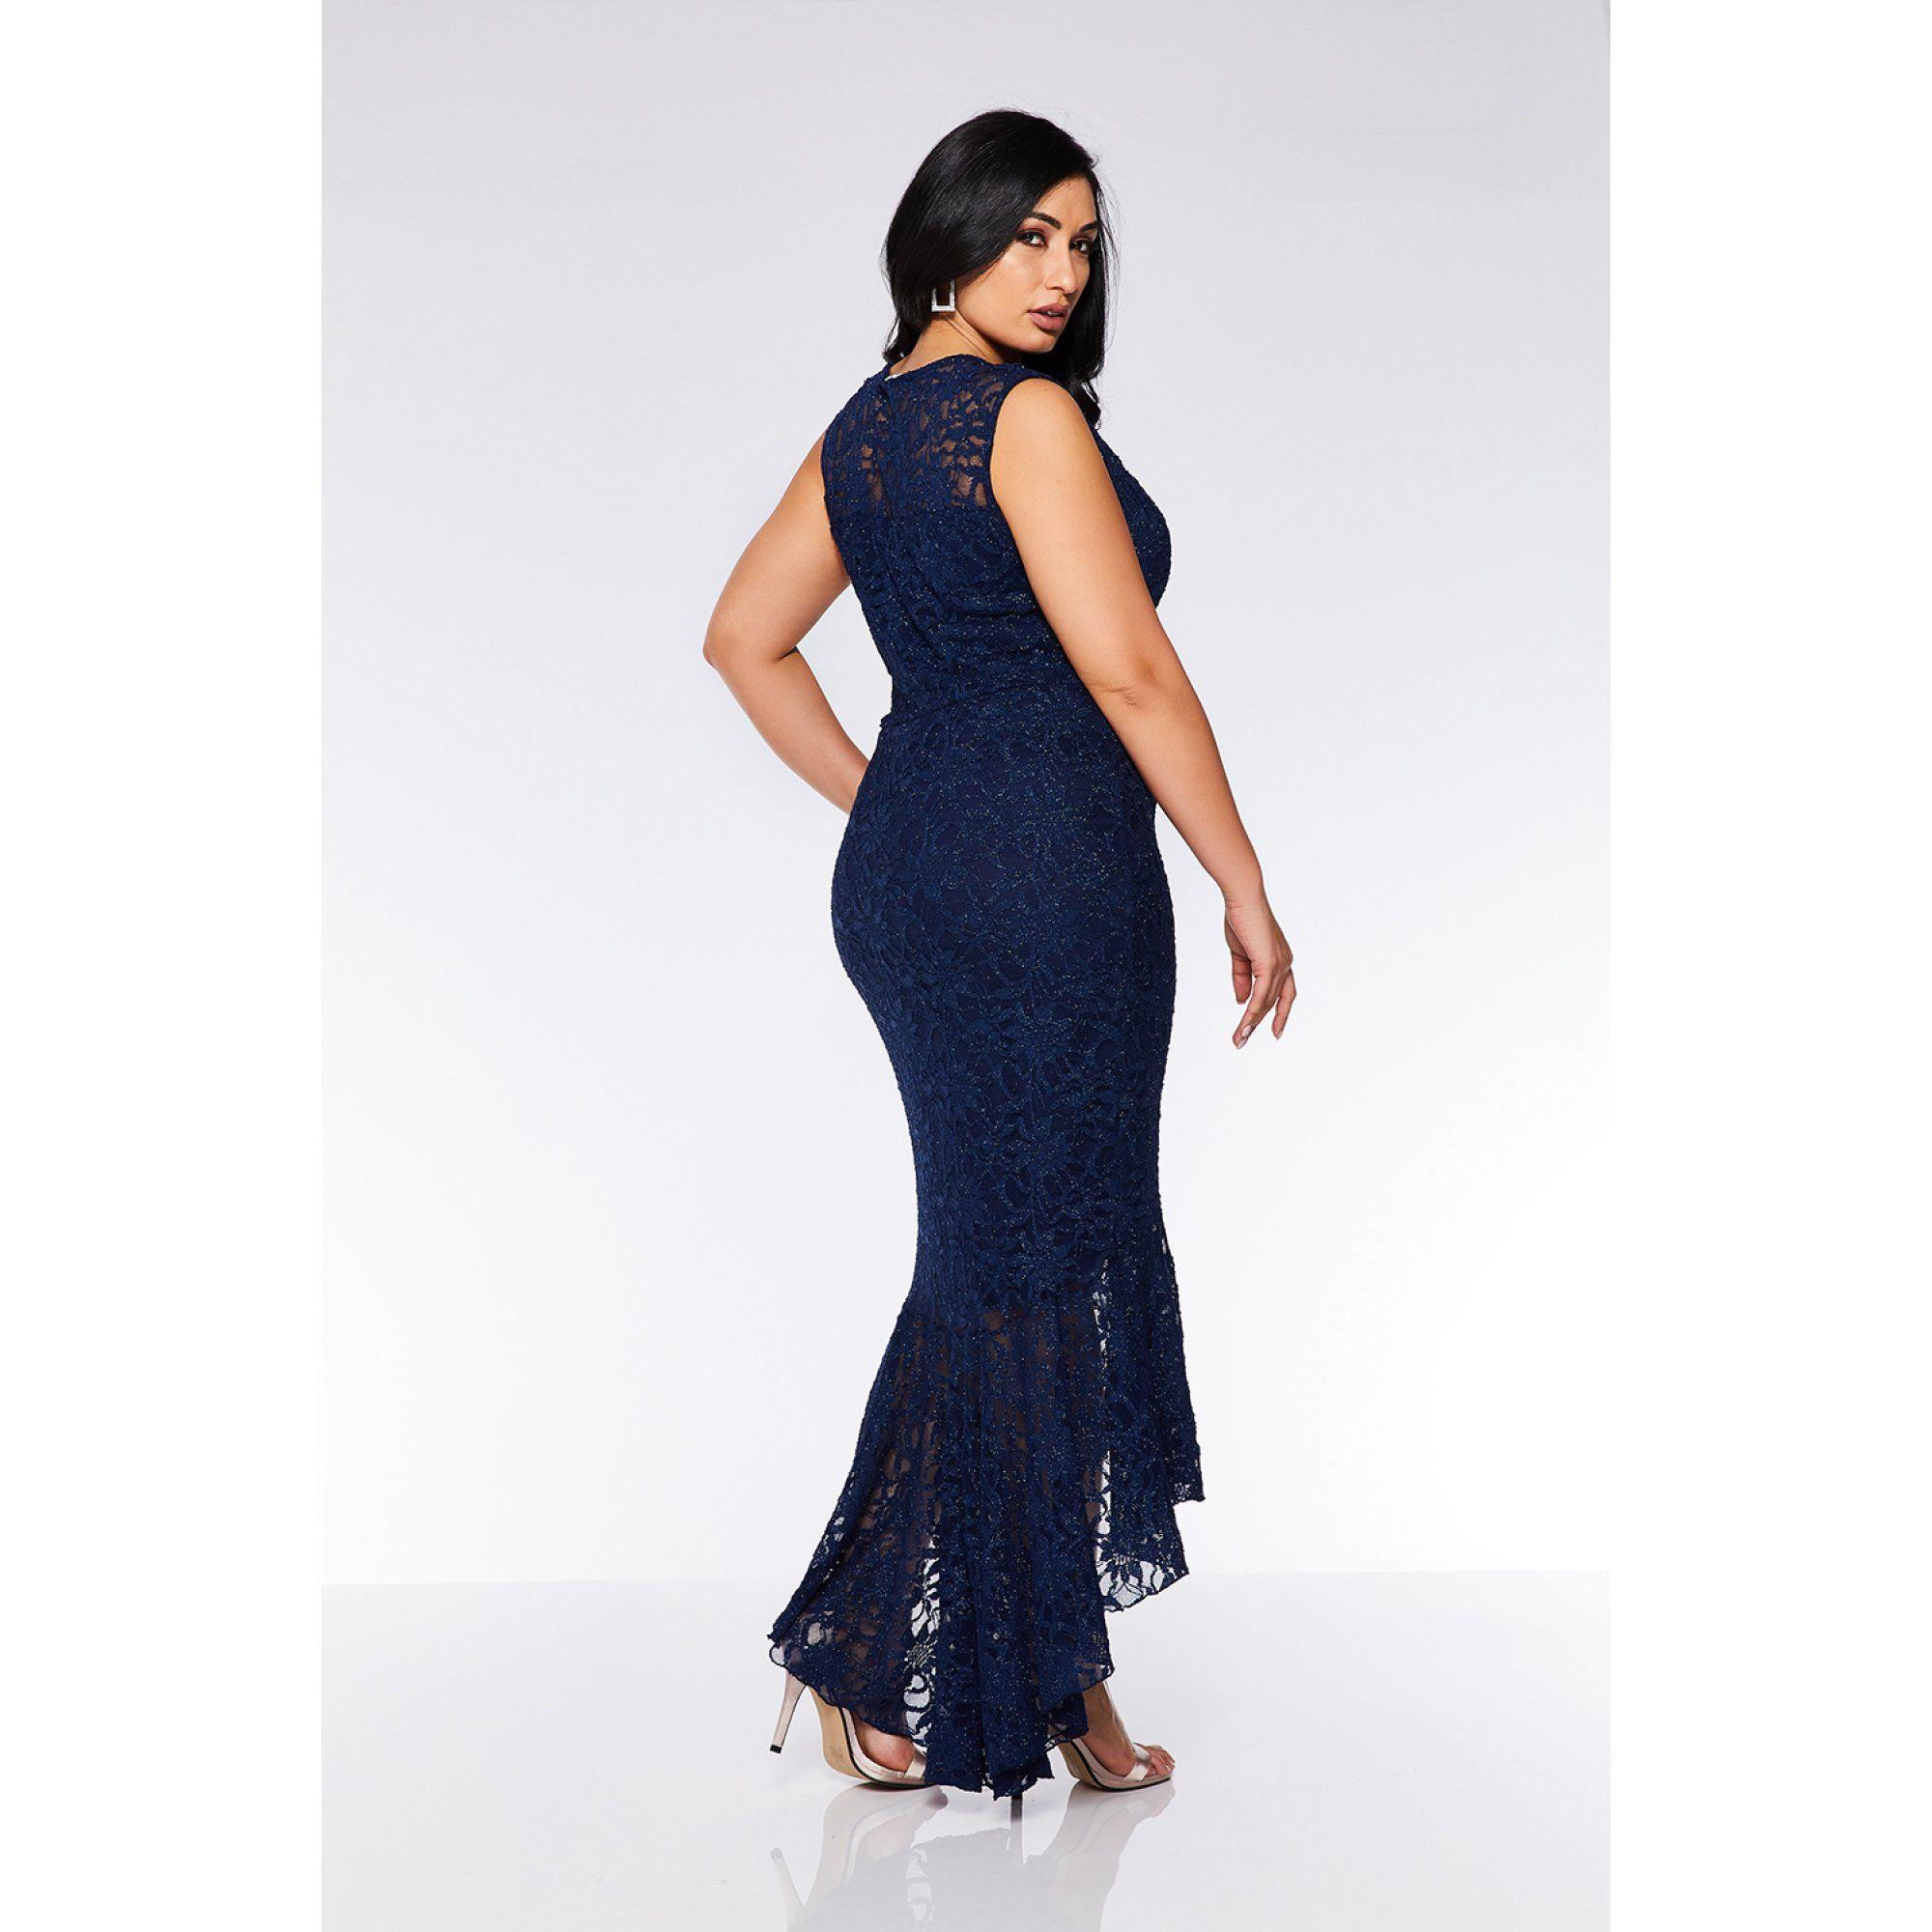 dd1176d27a2c1 Quiz Curve Navy Lace Glitter Dip Hem Maxi Dress in Blue - Lyst